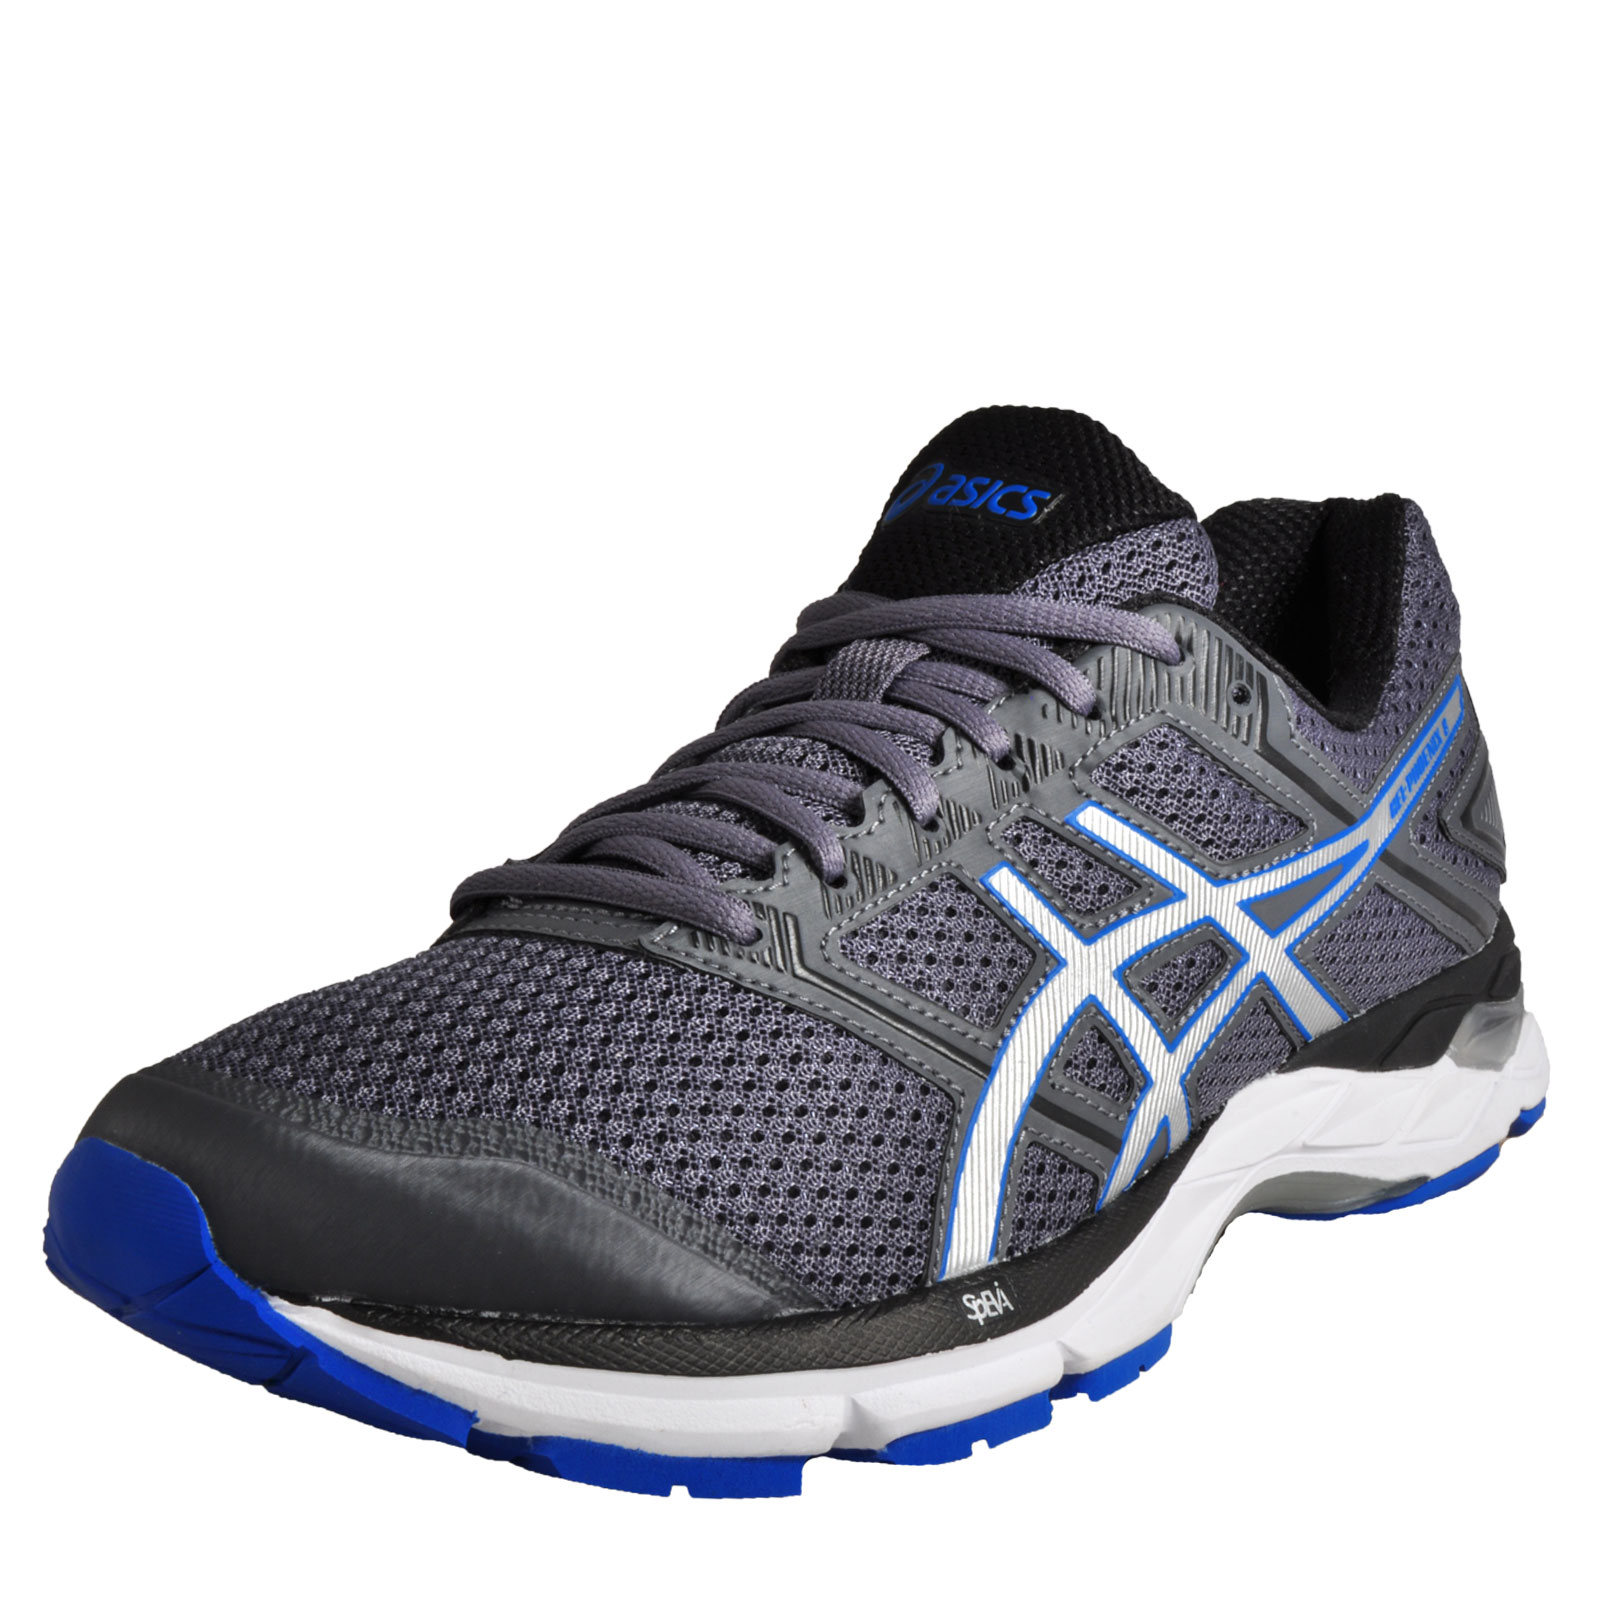 Asics Gel Phoenix 8 Mens Running Shoes Gym Fitness Trainers Carbon